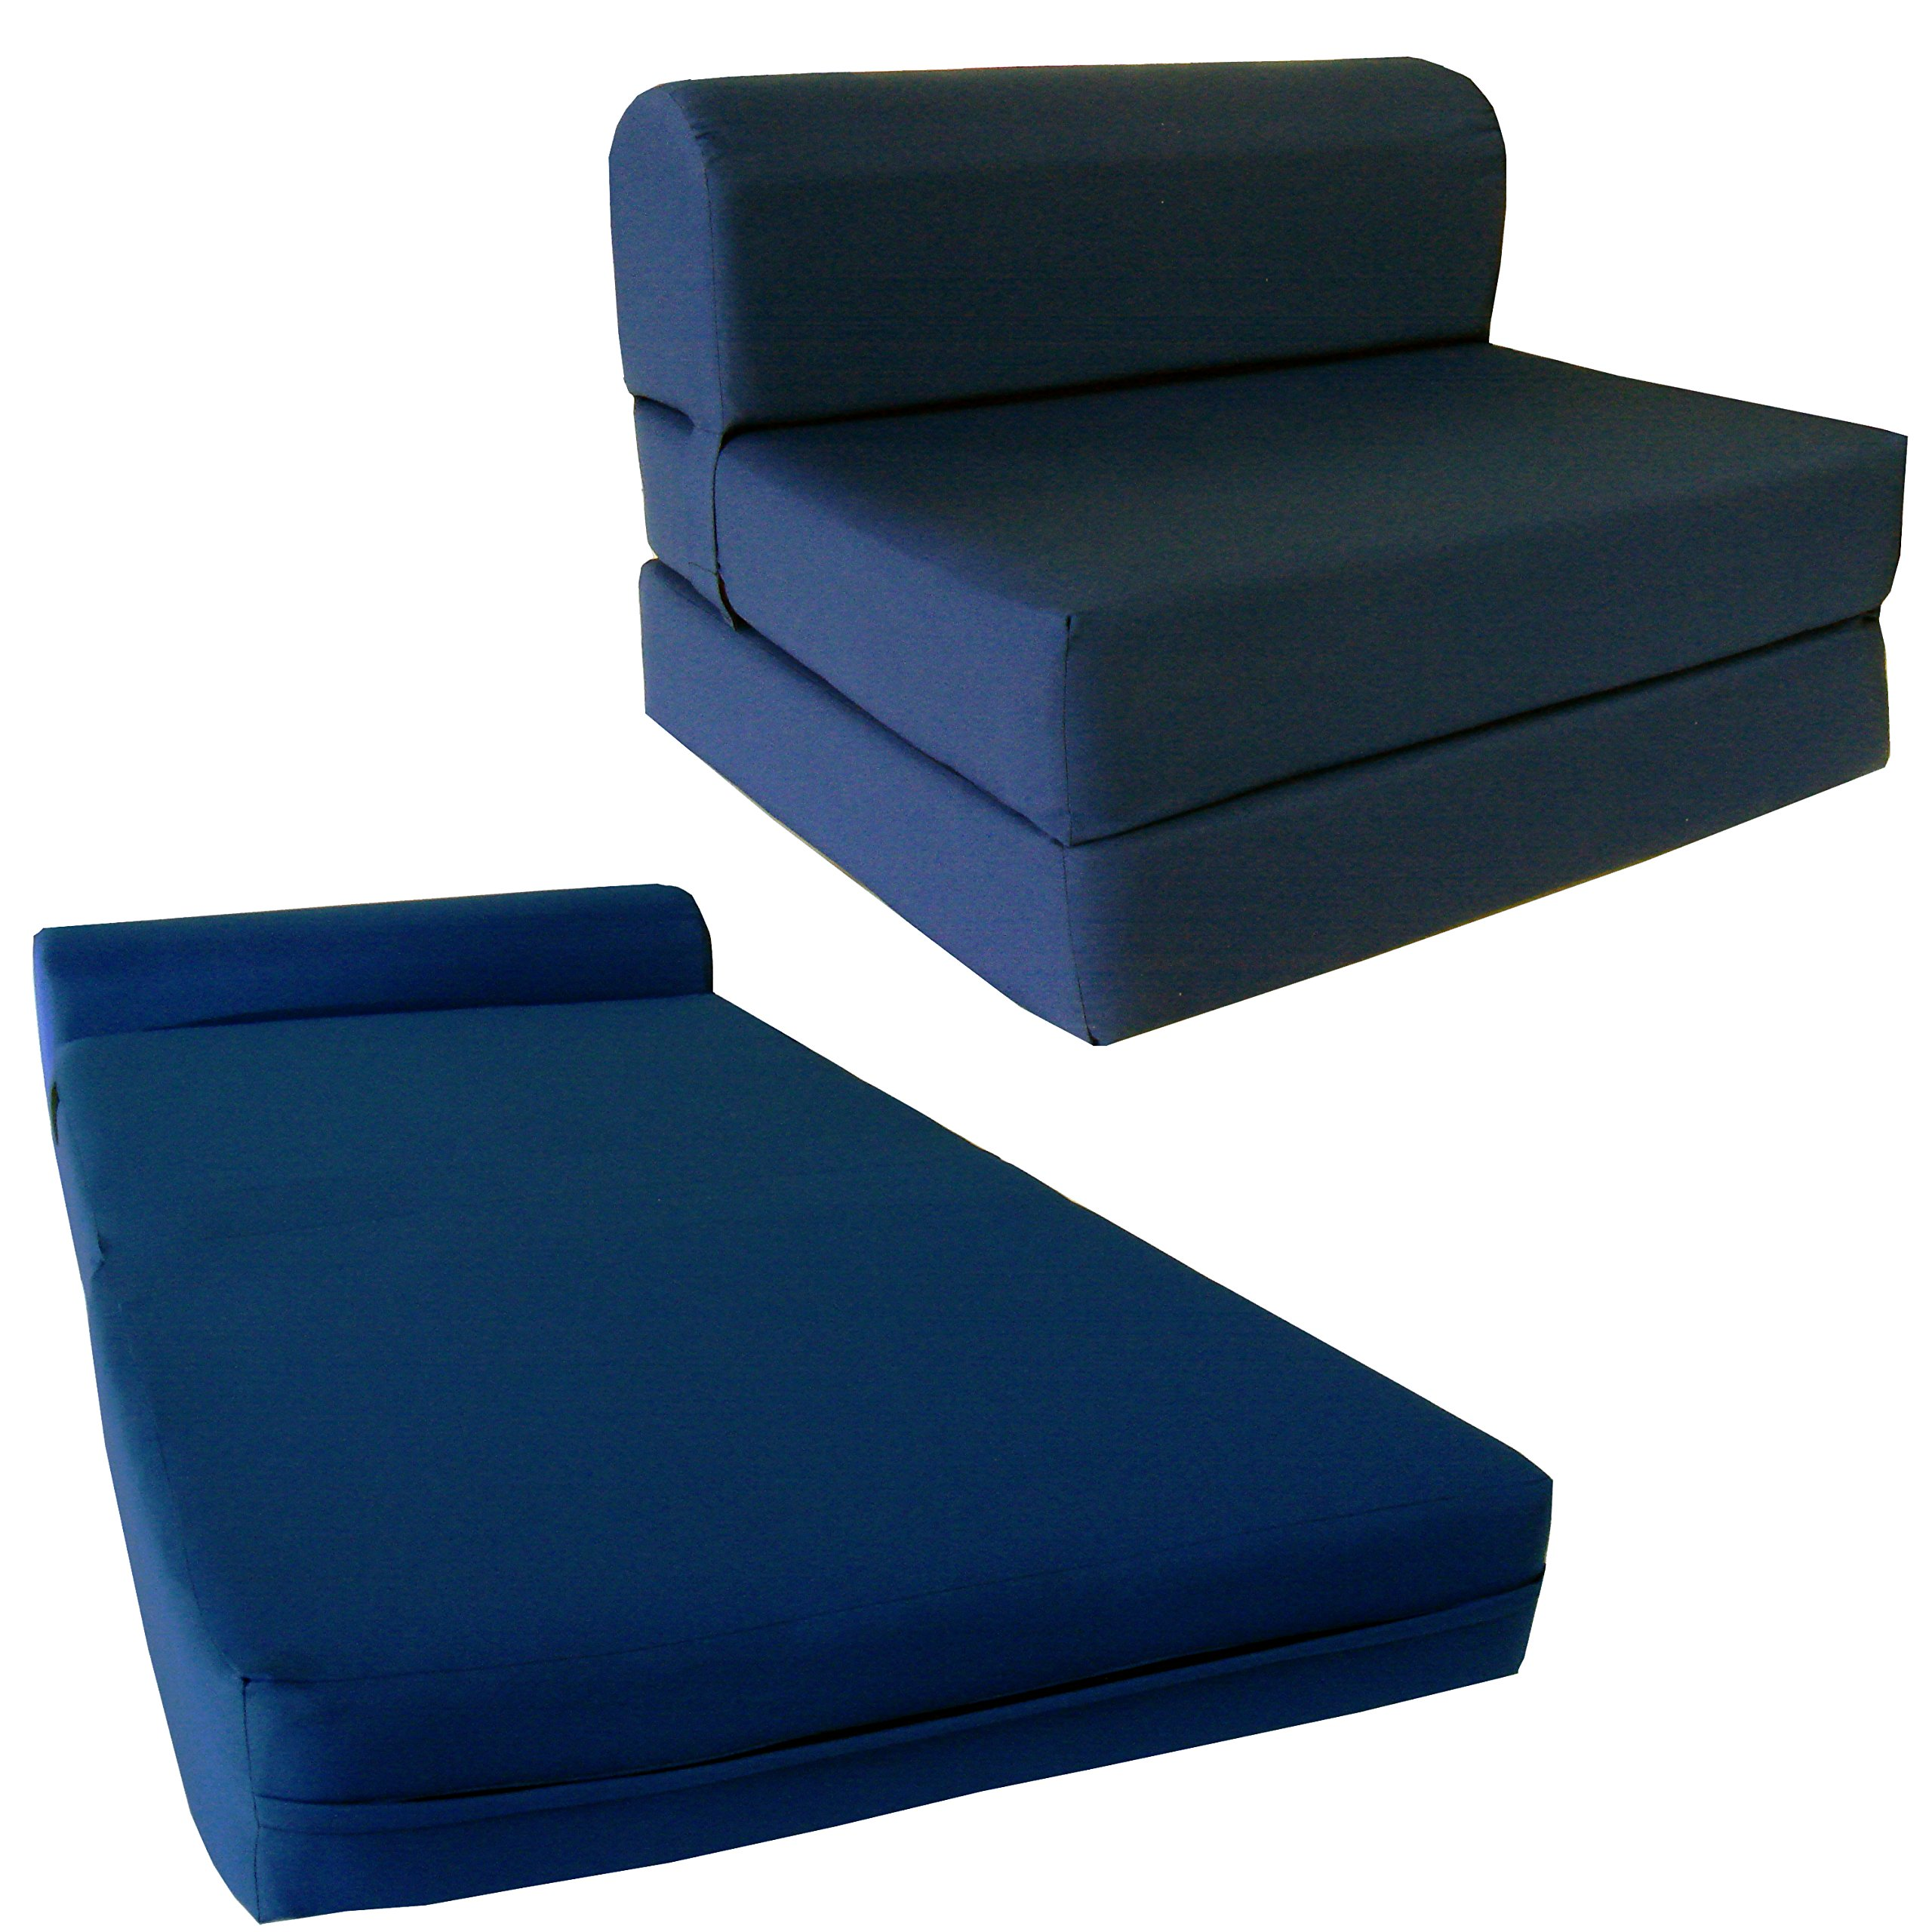 6'' Thick X 36'' Wide X 70'' Long Twin Size Navy Sleeper Chair Folding Foam Bed 1.8lbs Density, Studio Guest Foldable Chair Beds, Foam Sofa, Couch.